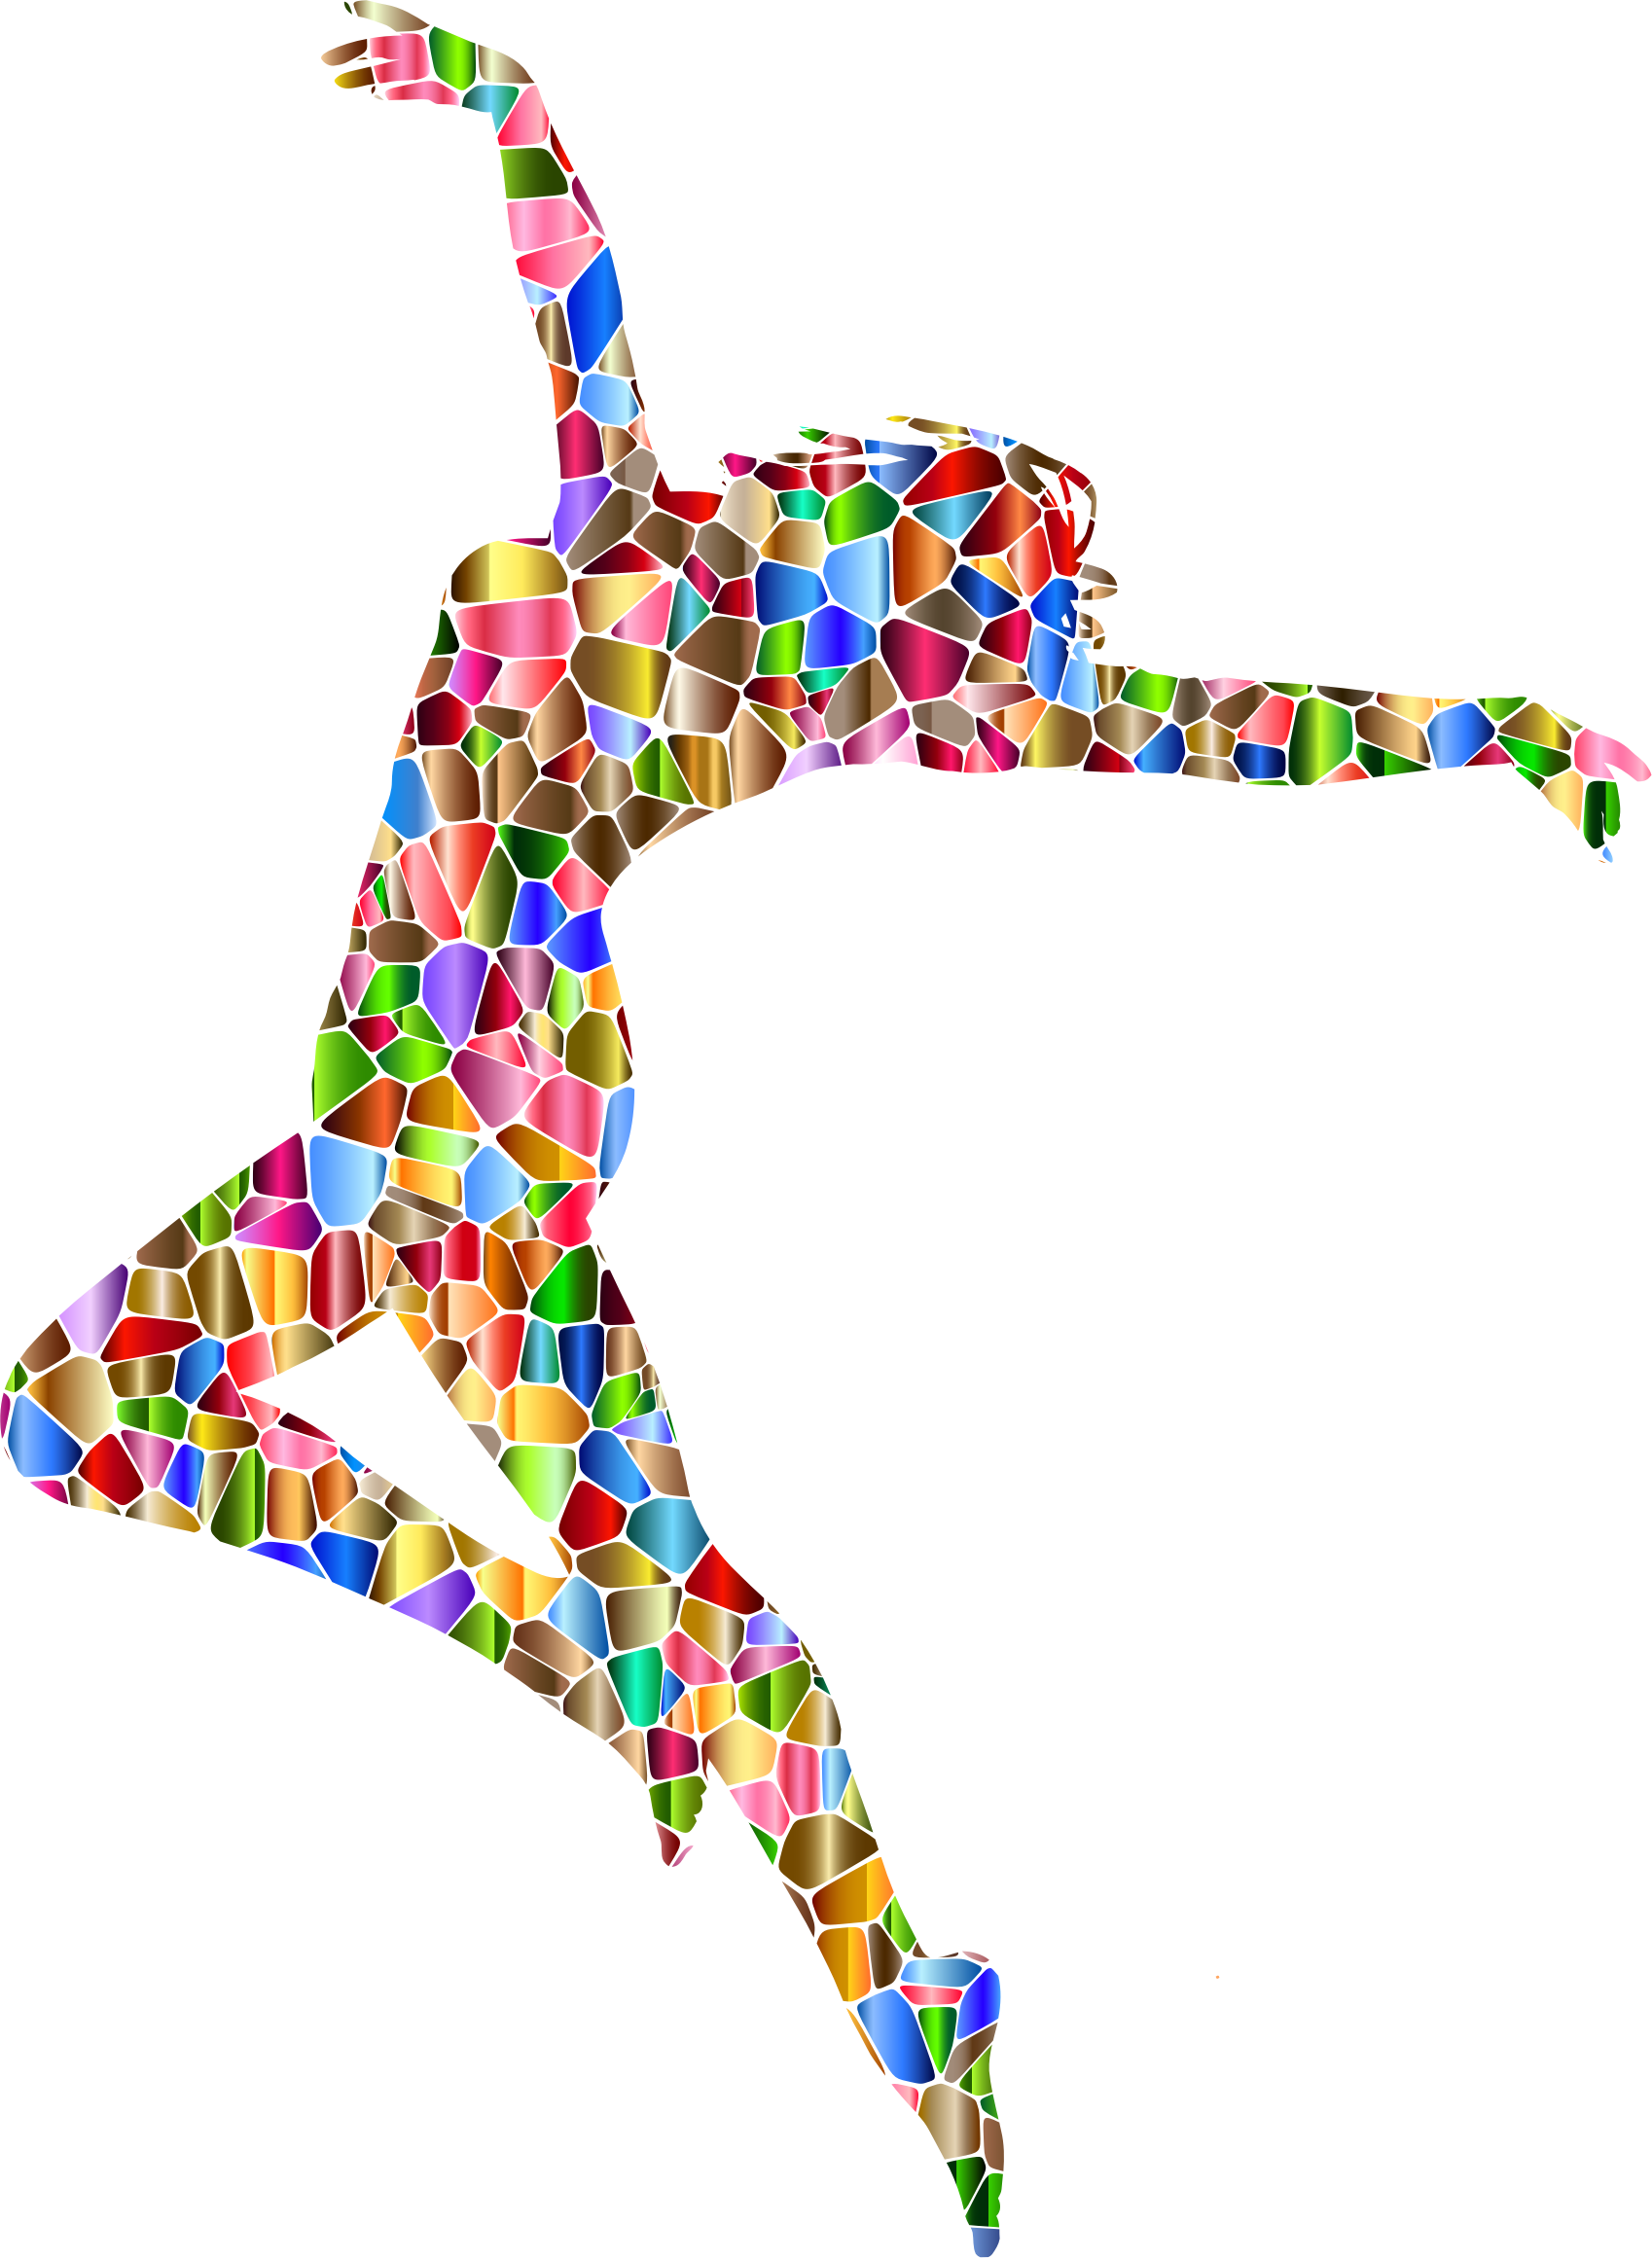 Chromatic Tiled Carefree Dancing Woman Silhouette